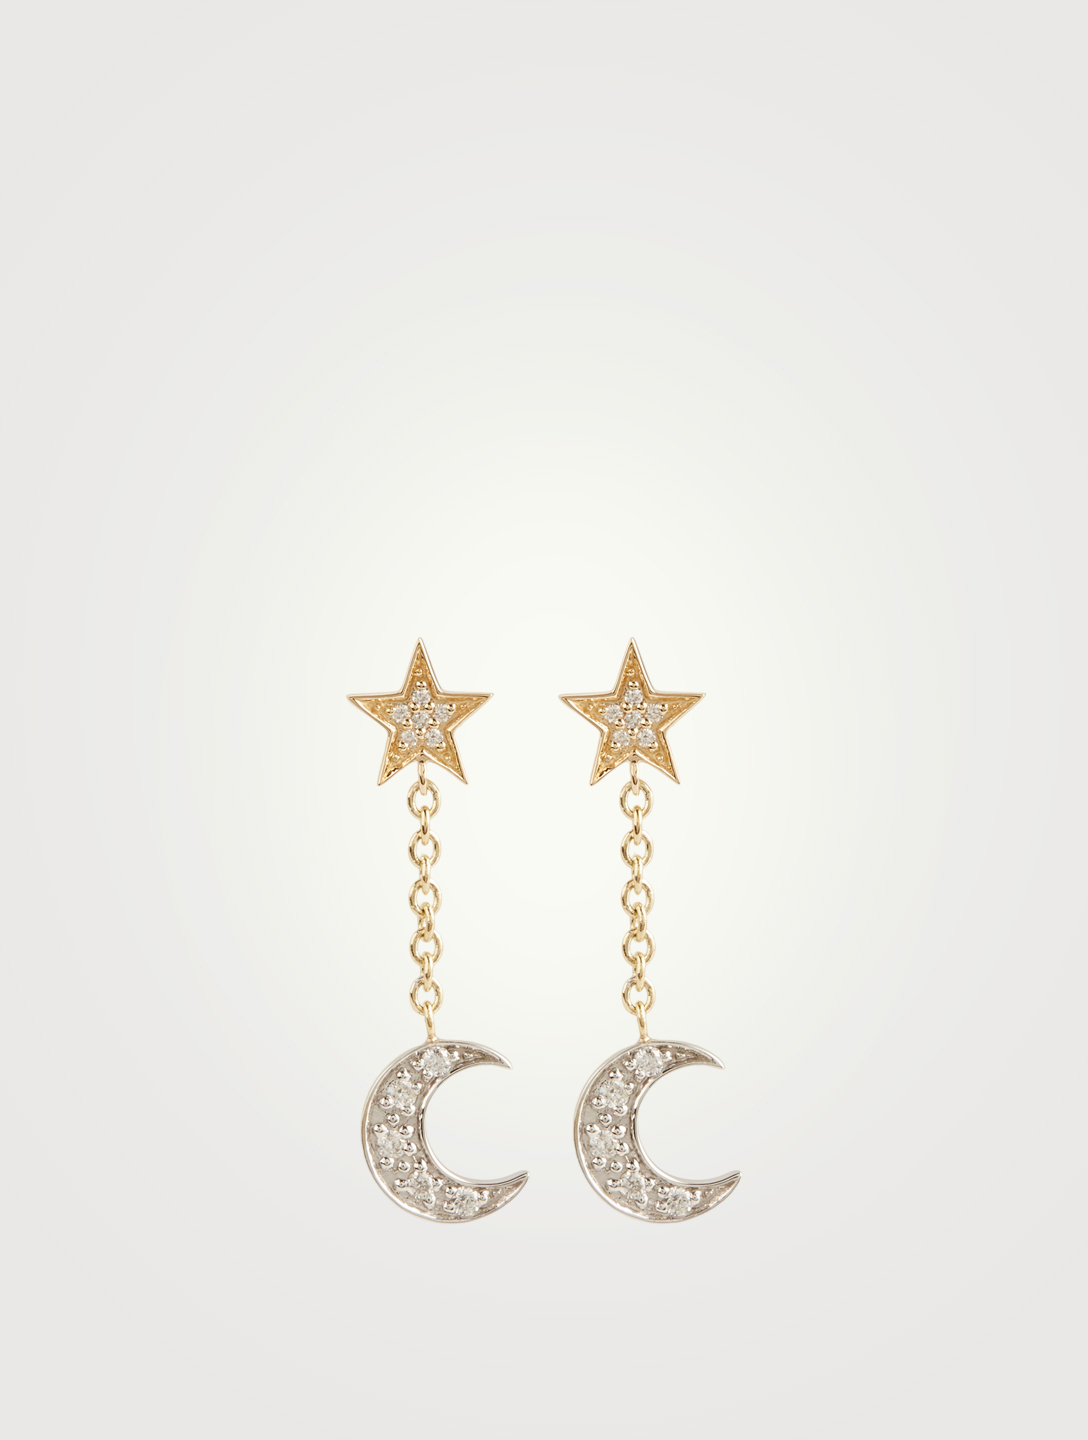 SYDNEY EVAN 14K Gold Celestial Earrings With Diamonds Women's Metallic